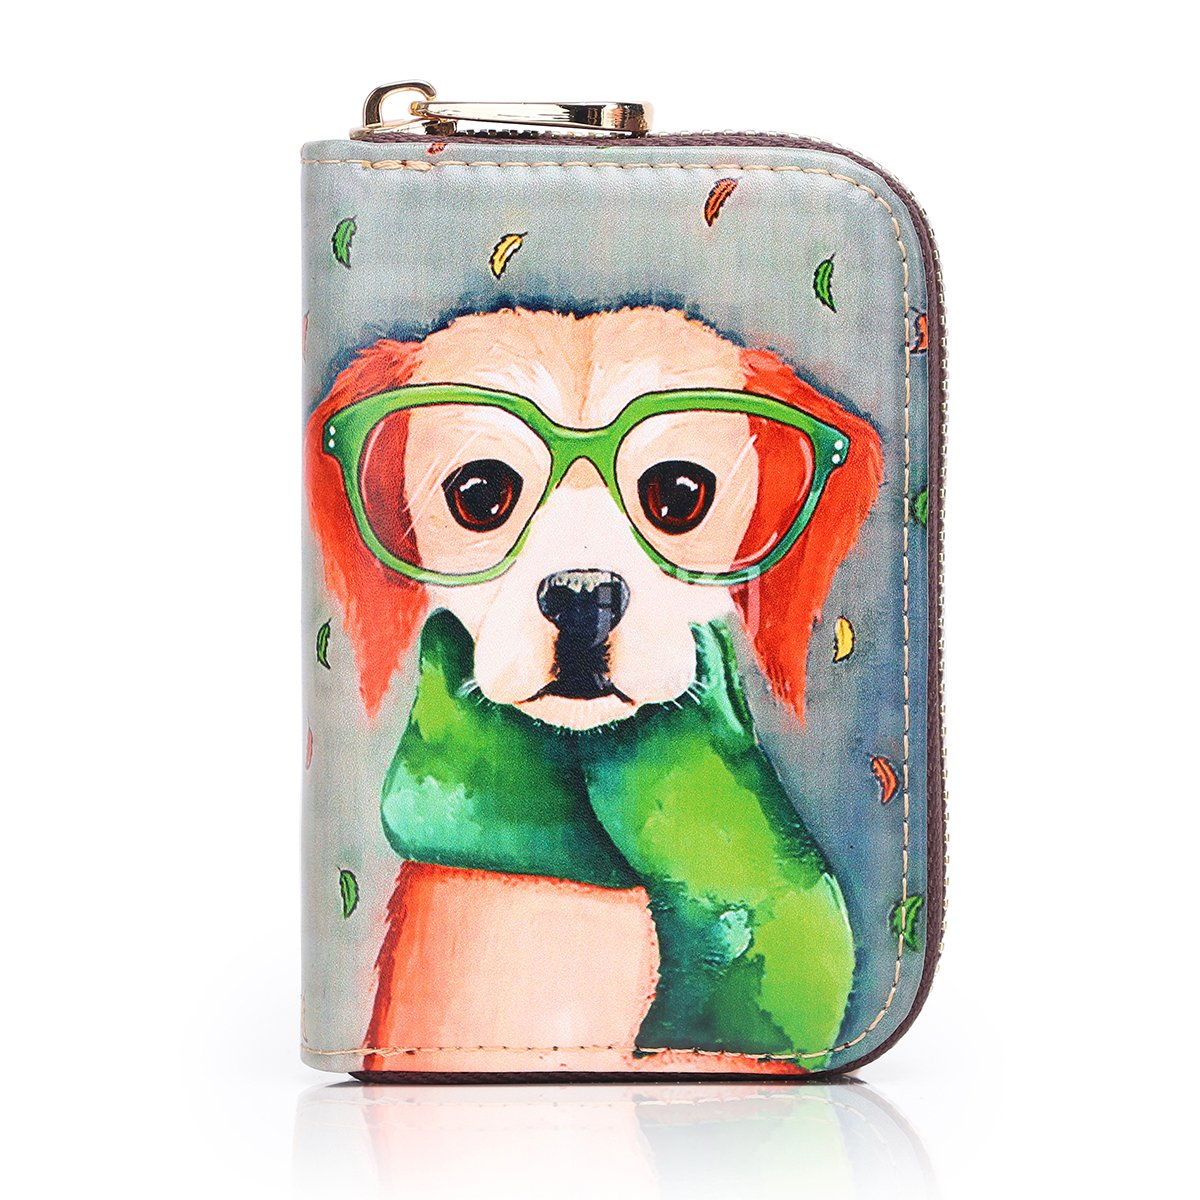 APHISON RFID Credit Card Holder Wallets for Women Leather Cartoon Patterns Zipper Card Case for Ladies Girls/Gift Box 012